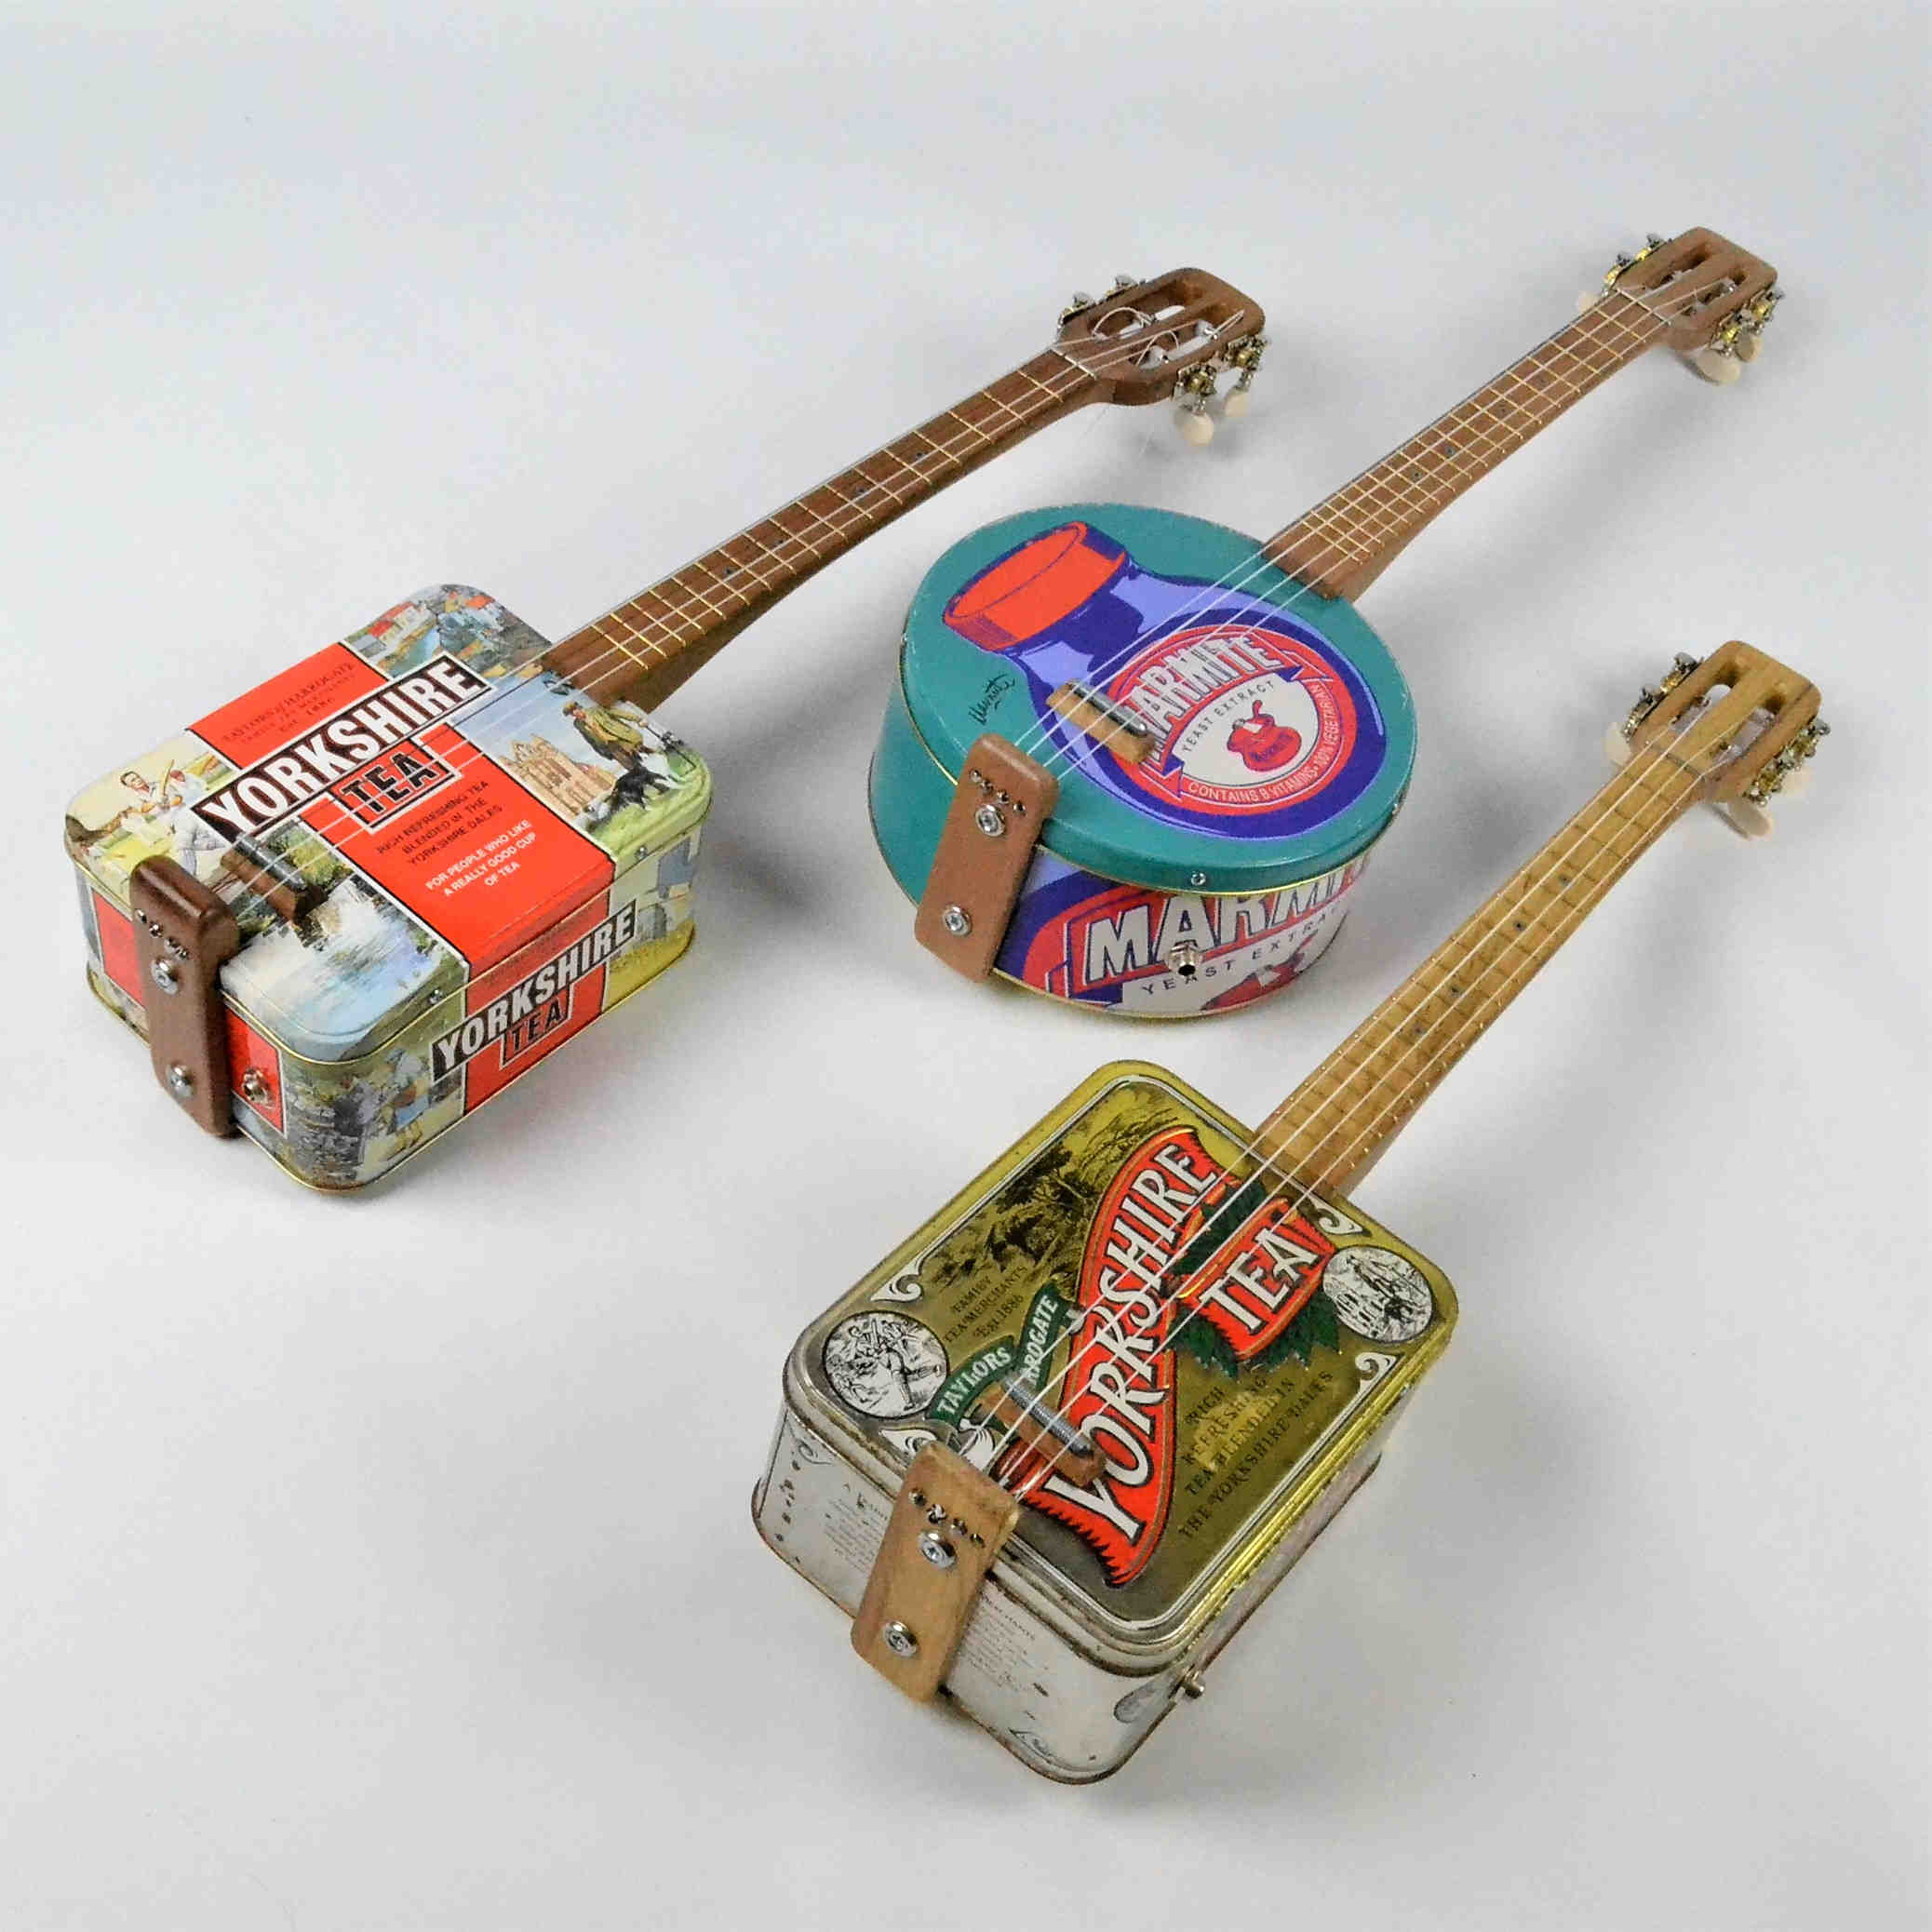 Canjo's, Guitars and Ukeleles lovingly hand crafted stringed musical instruments, made from reclaimed and recycled materials.